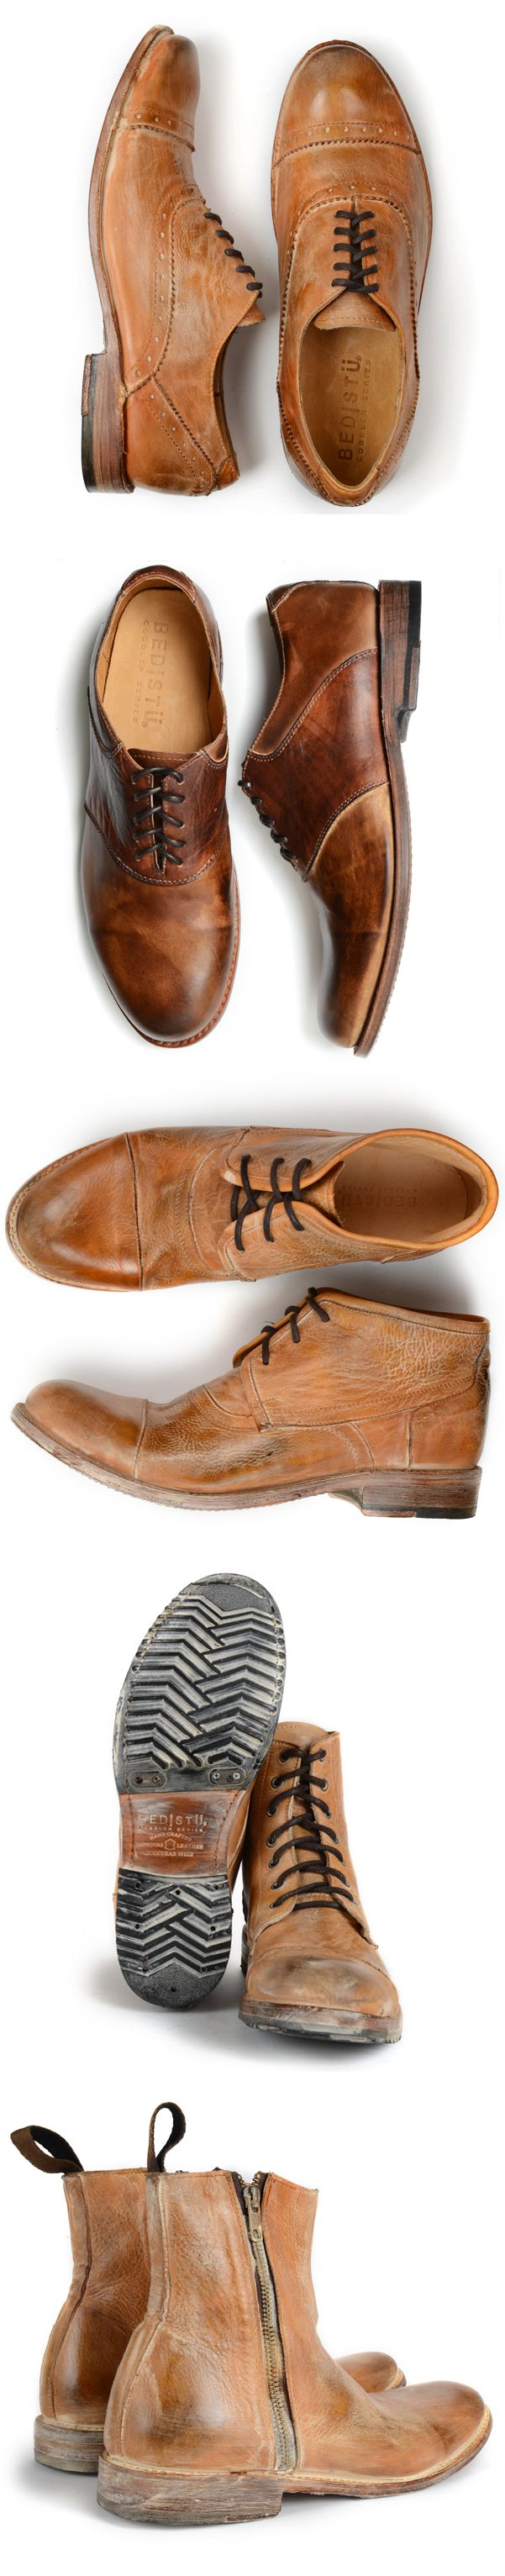 Some shoes require a little work, wear and aging to bring out their true/best personality...